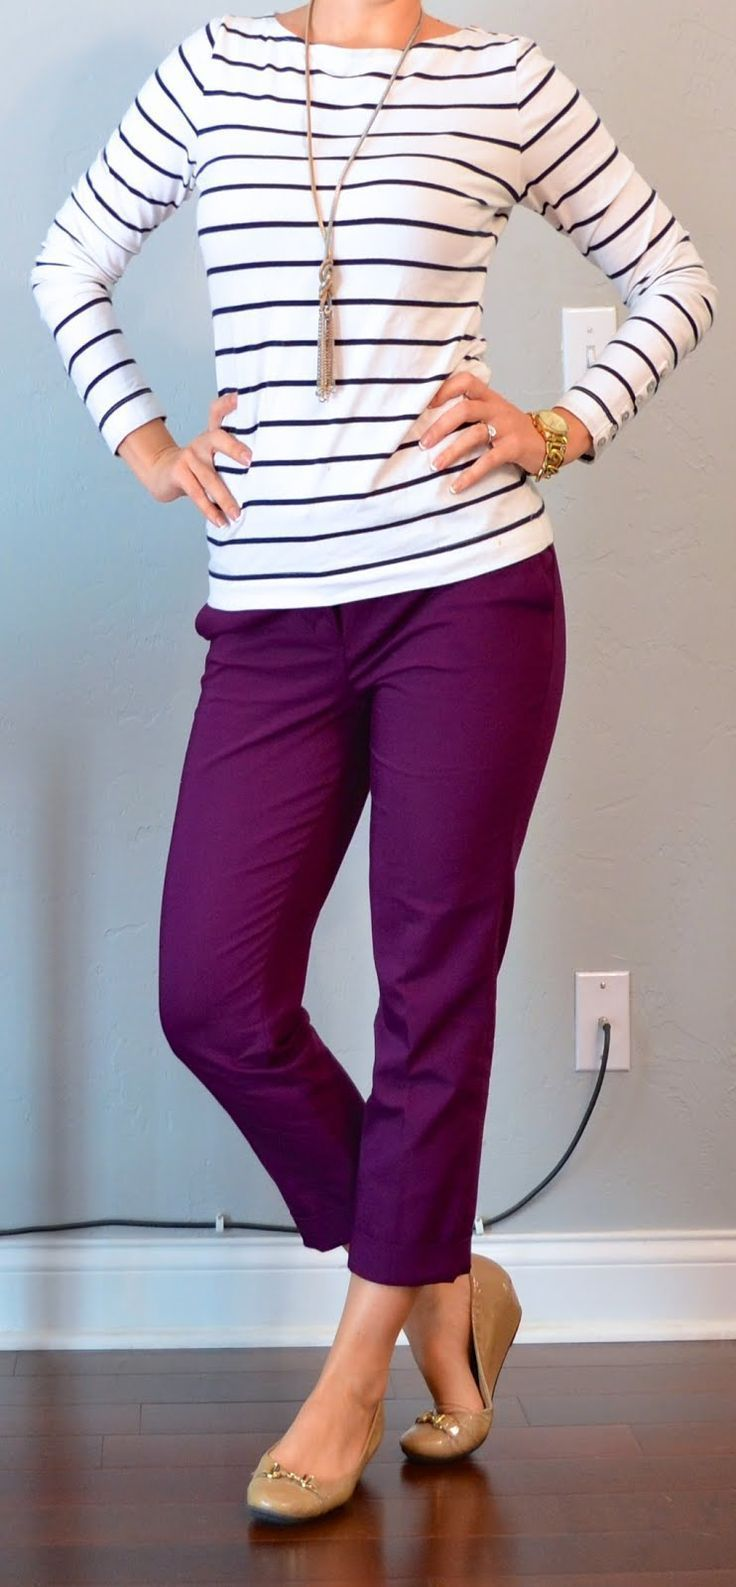 Outfit Posts: Blog full of pictures perfect for the teacher's wardrobe. Modest, stylish outfits for work.